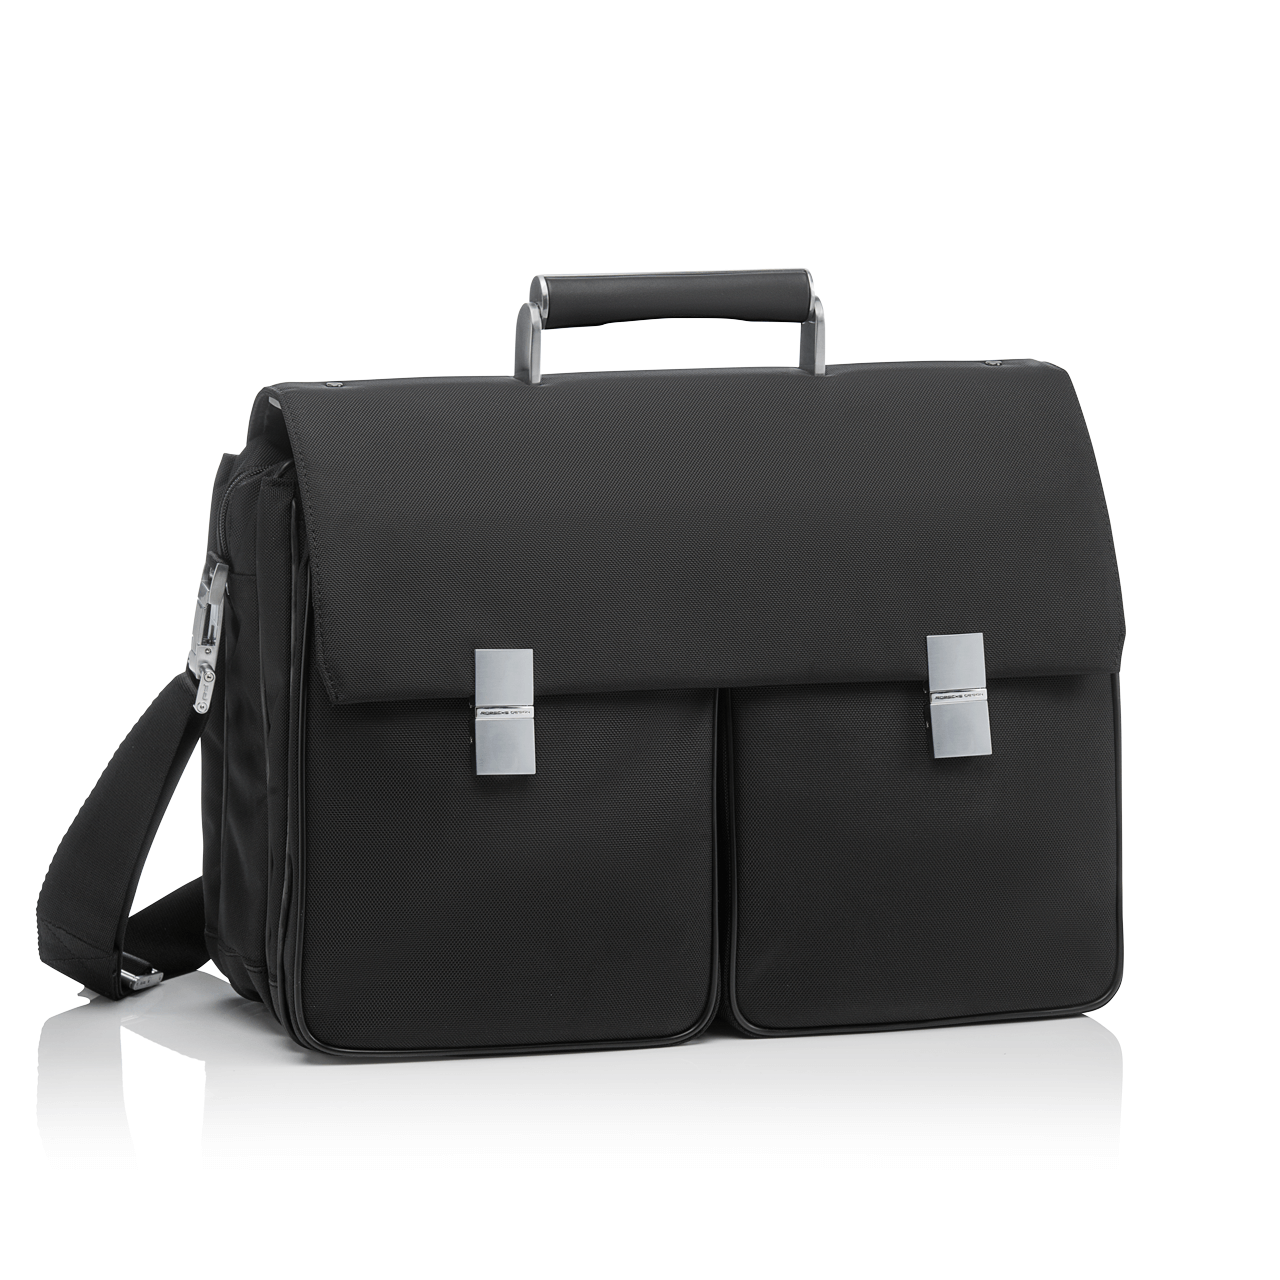 ROADSTER SOFTCASE SERIES BRIEFBAG FM - фото 1